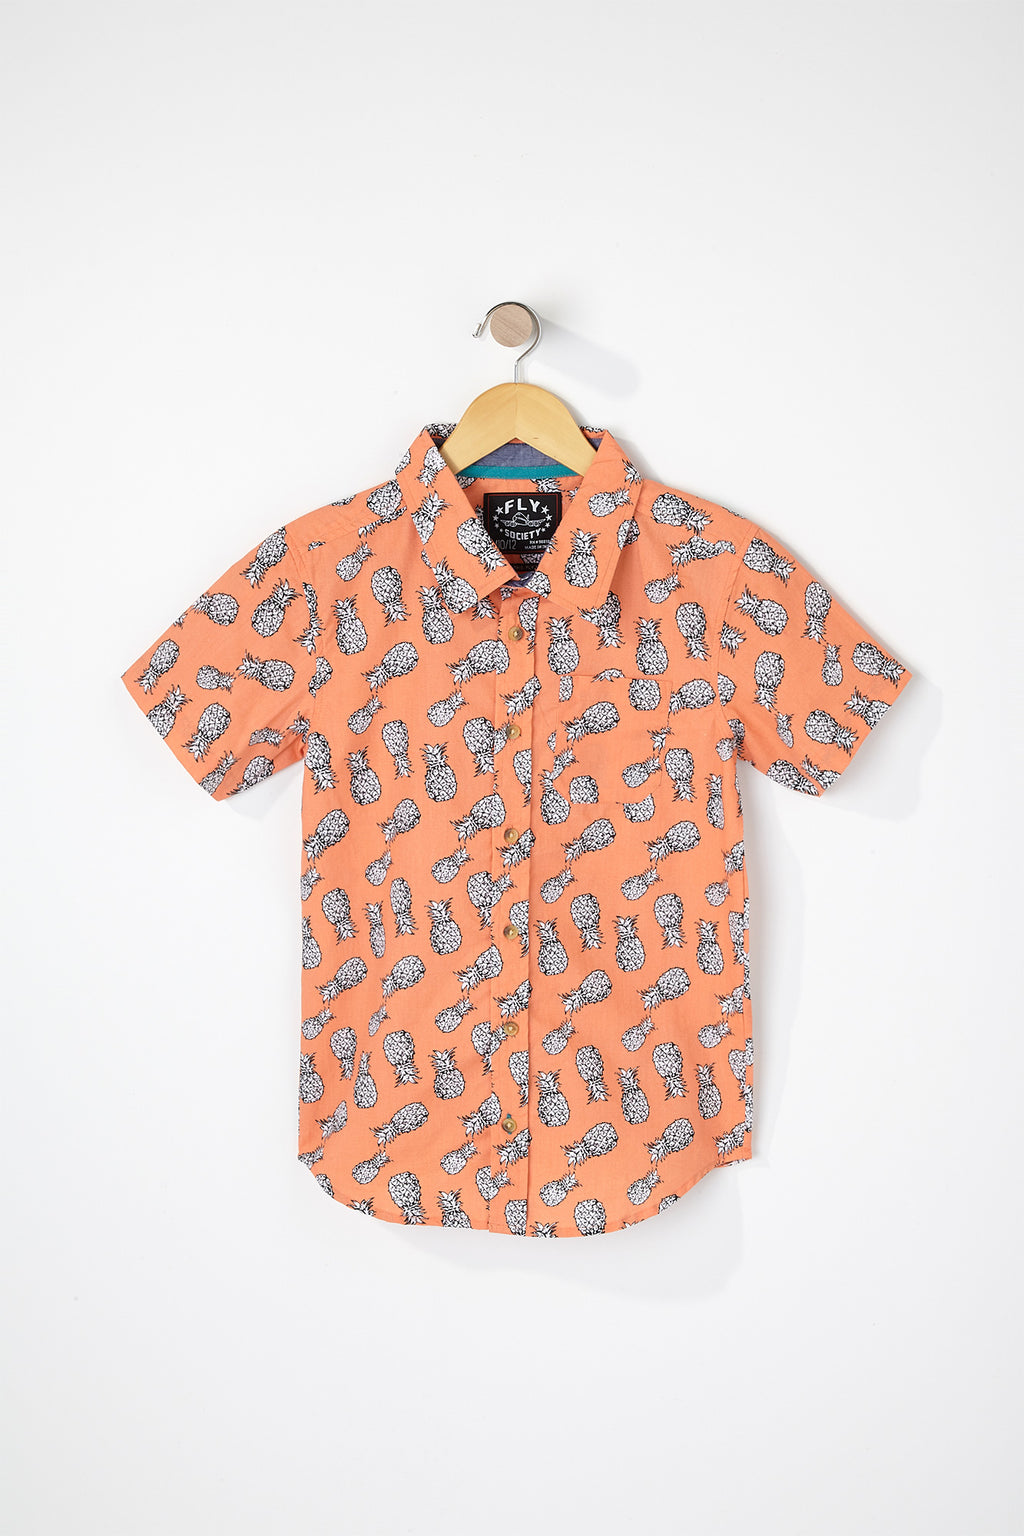 West49 Boys Pineapple Button Up Shirt